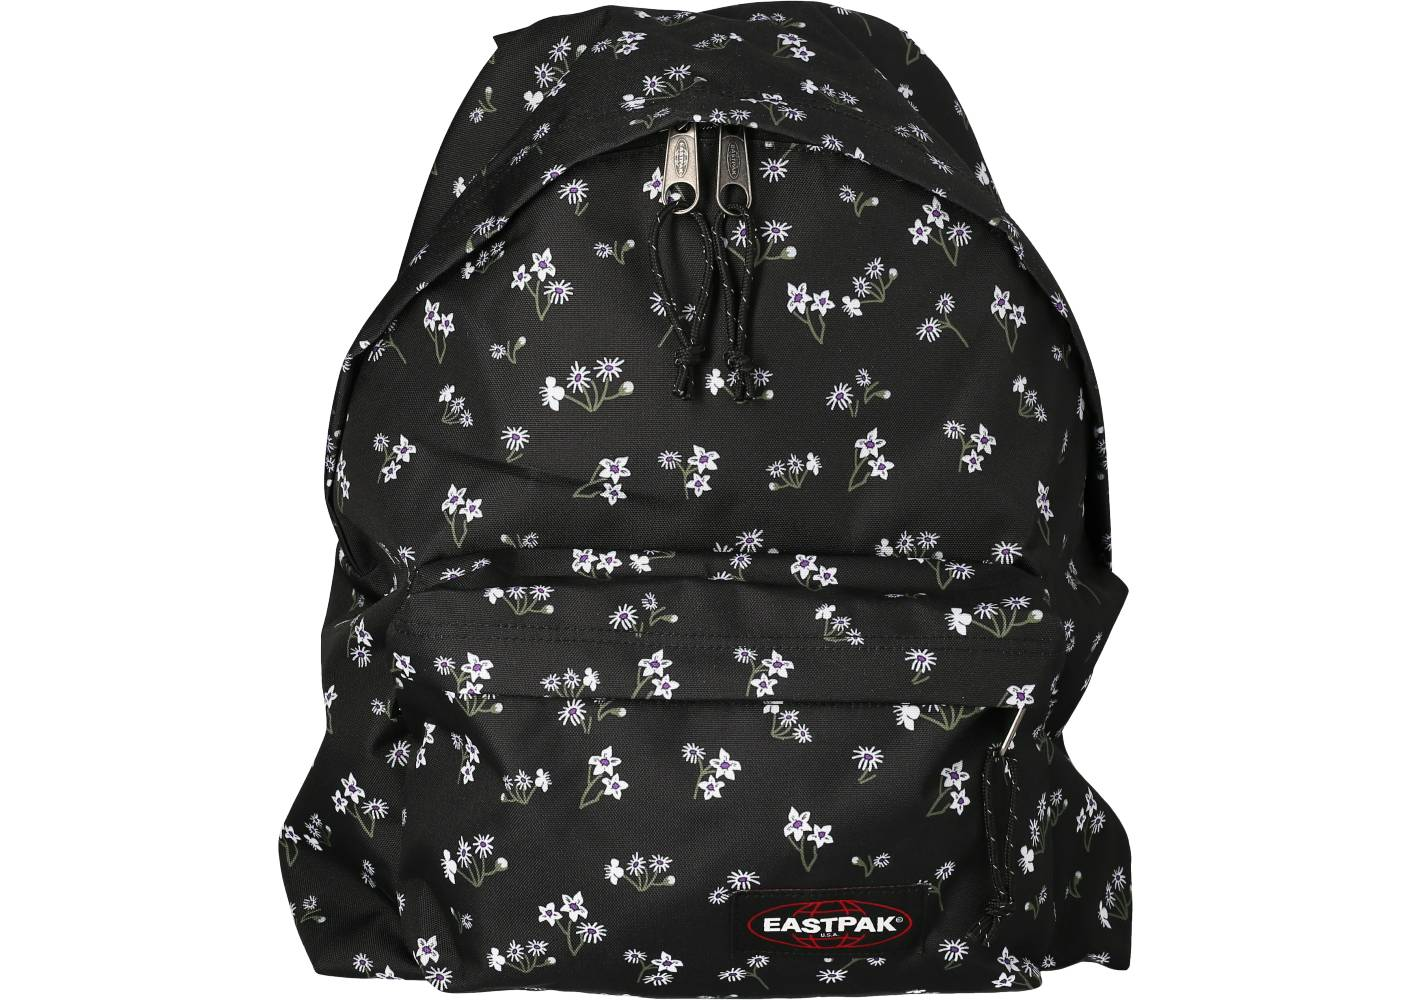 Eastpak Unisexe Sac à Dos Padded Pak'r Bliss Dark